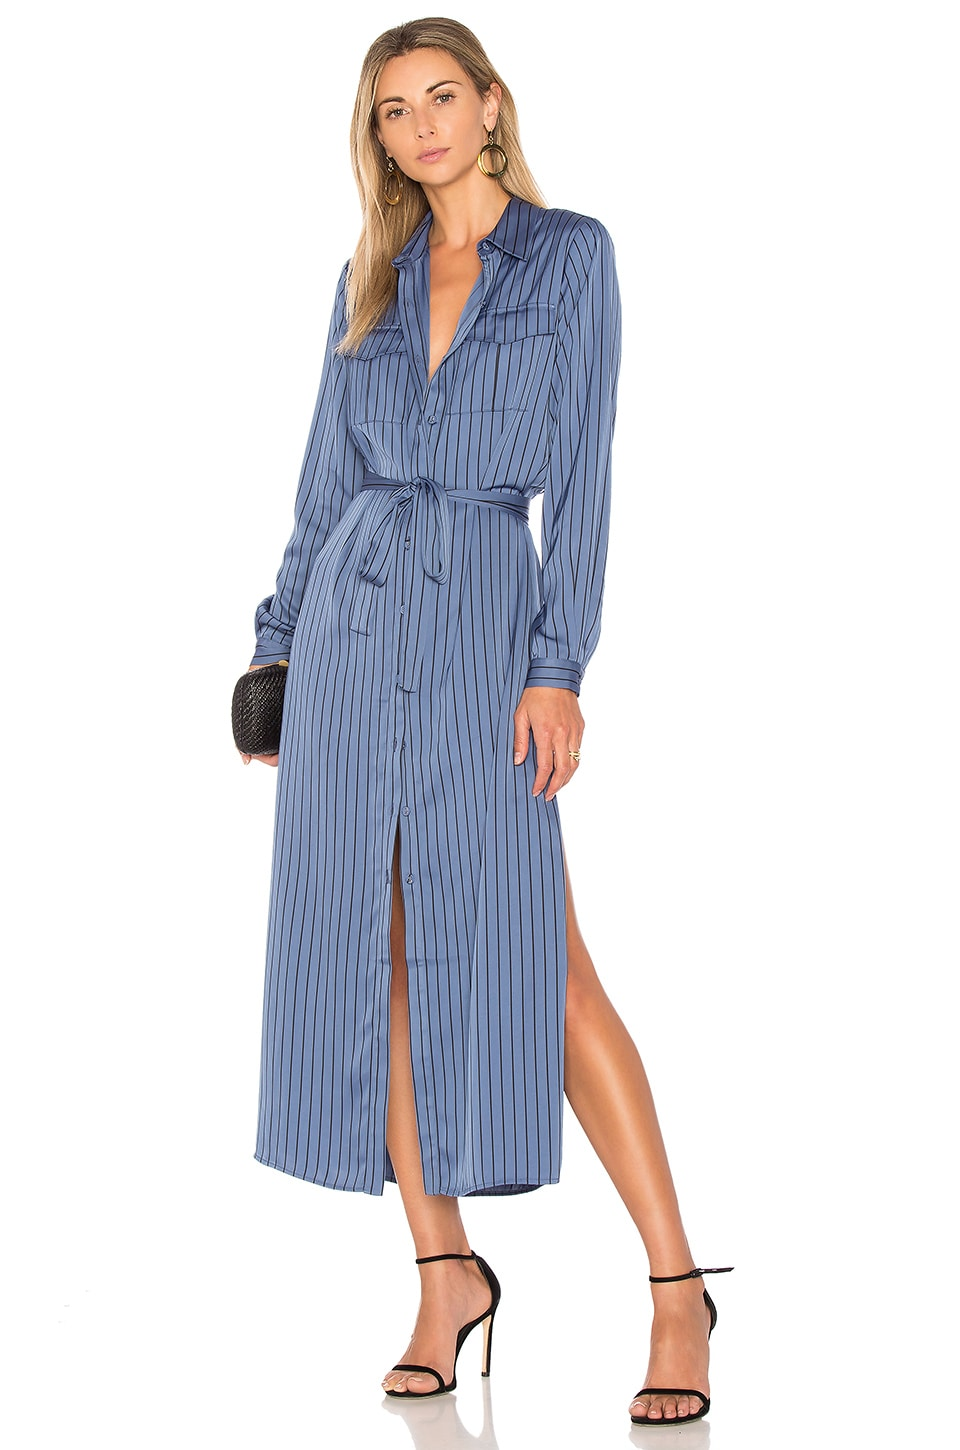 L'Academie The Long Sleeve Shirt Dress in Azure Pinstripe